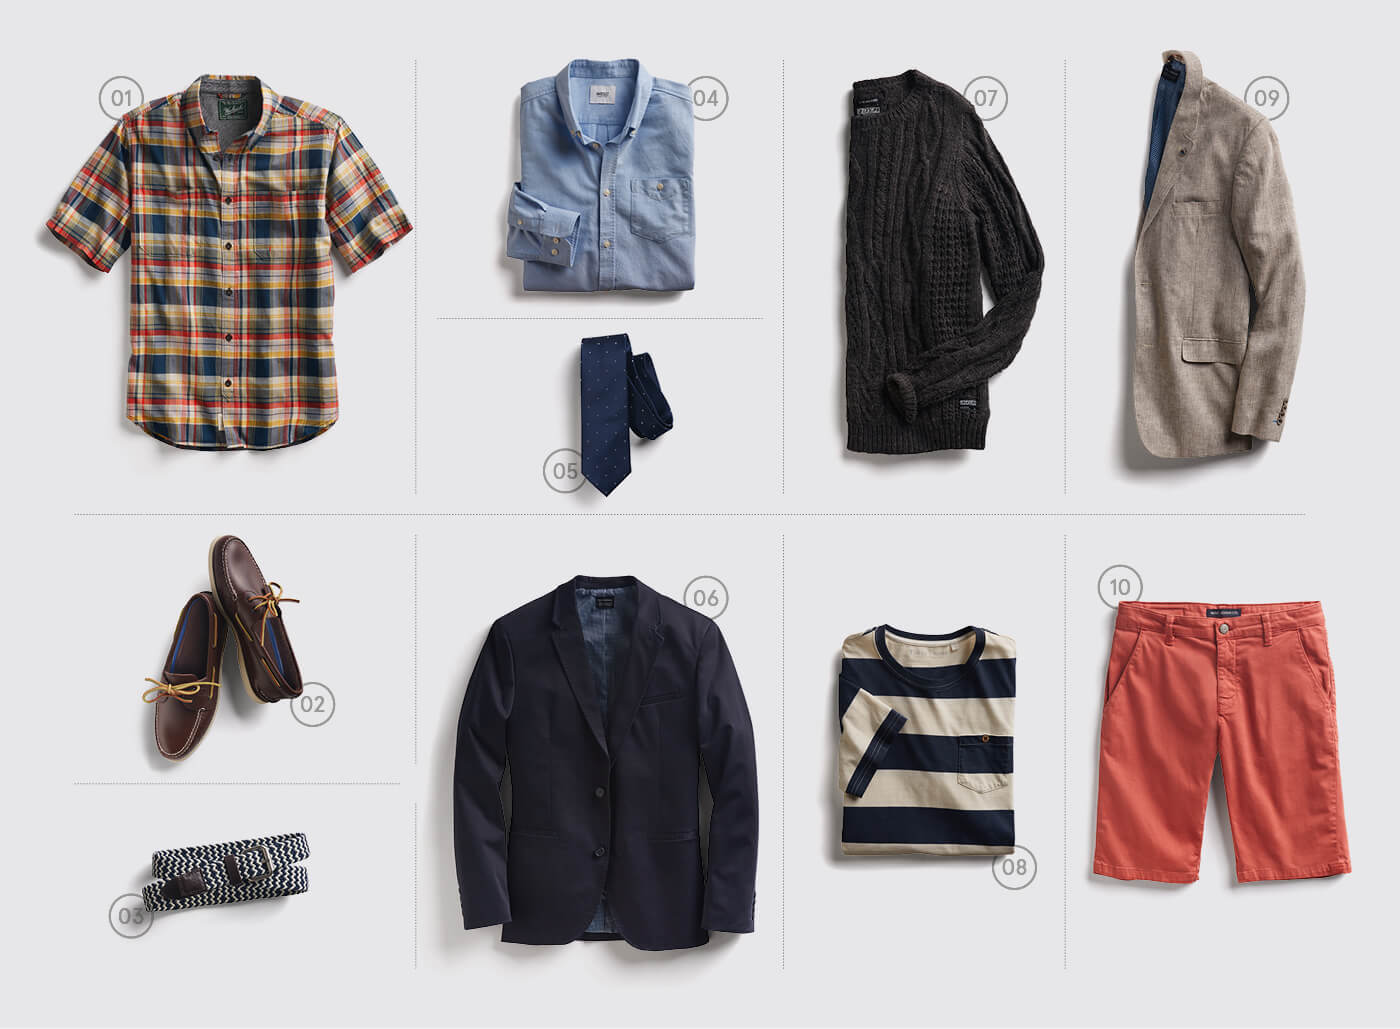 aa62791a98f0 The 10 Elements of Preppy Style | Stitch Fix Men